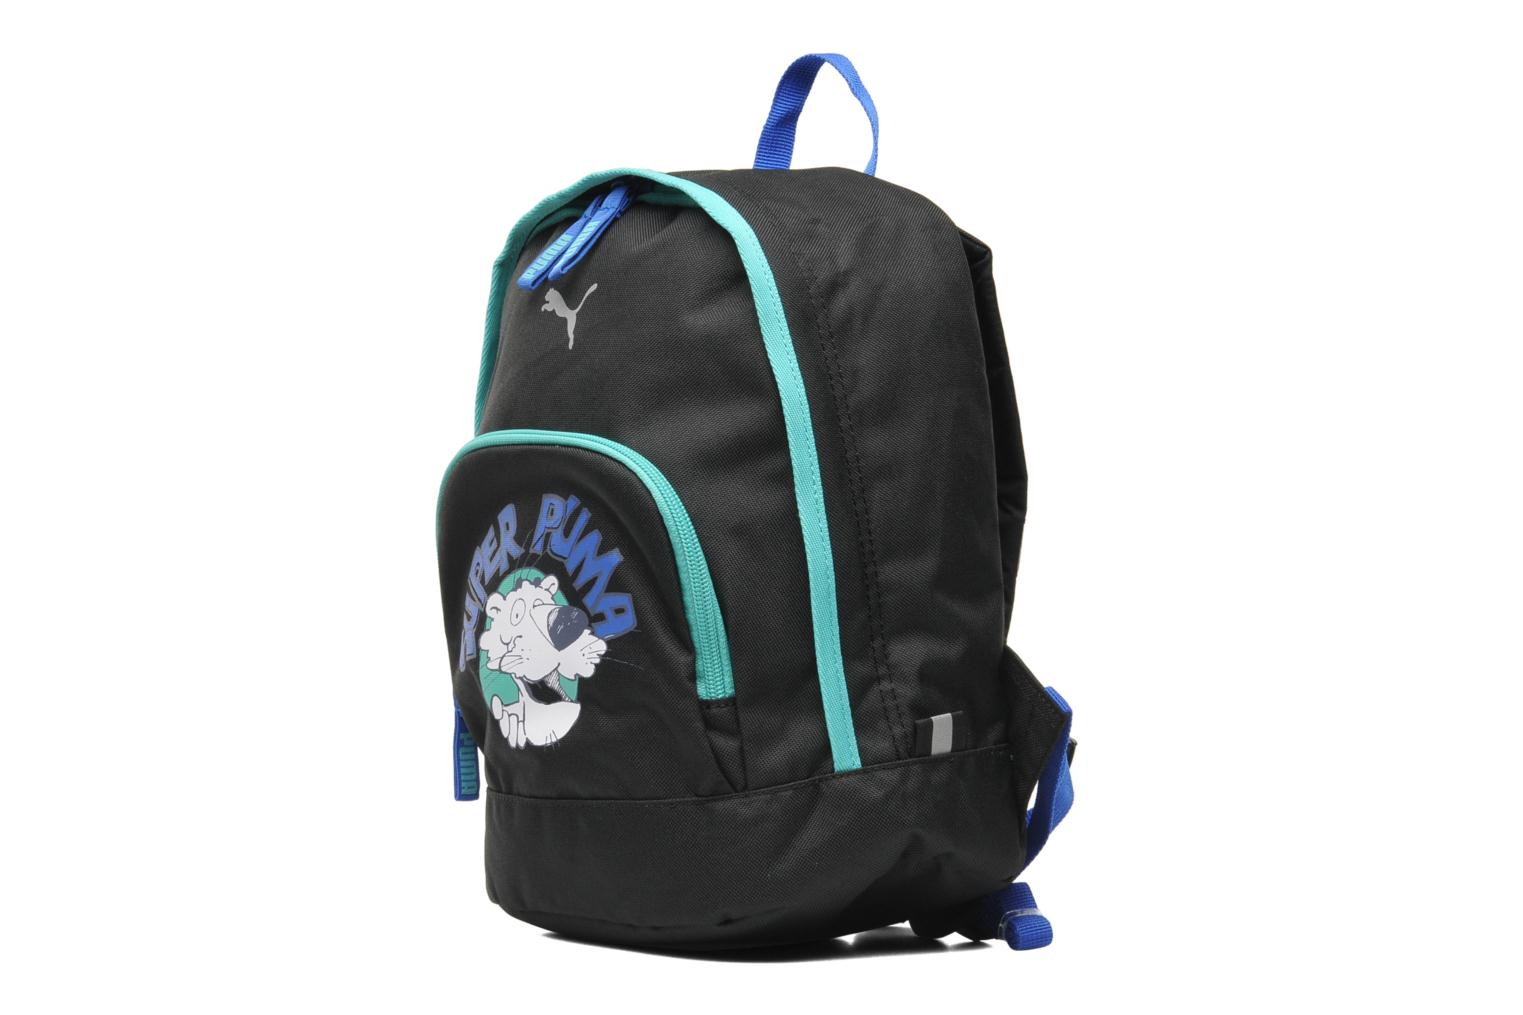 Primary Small Backpack Black A14